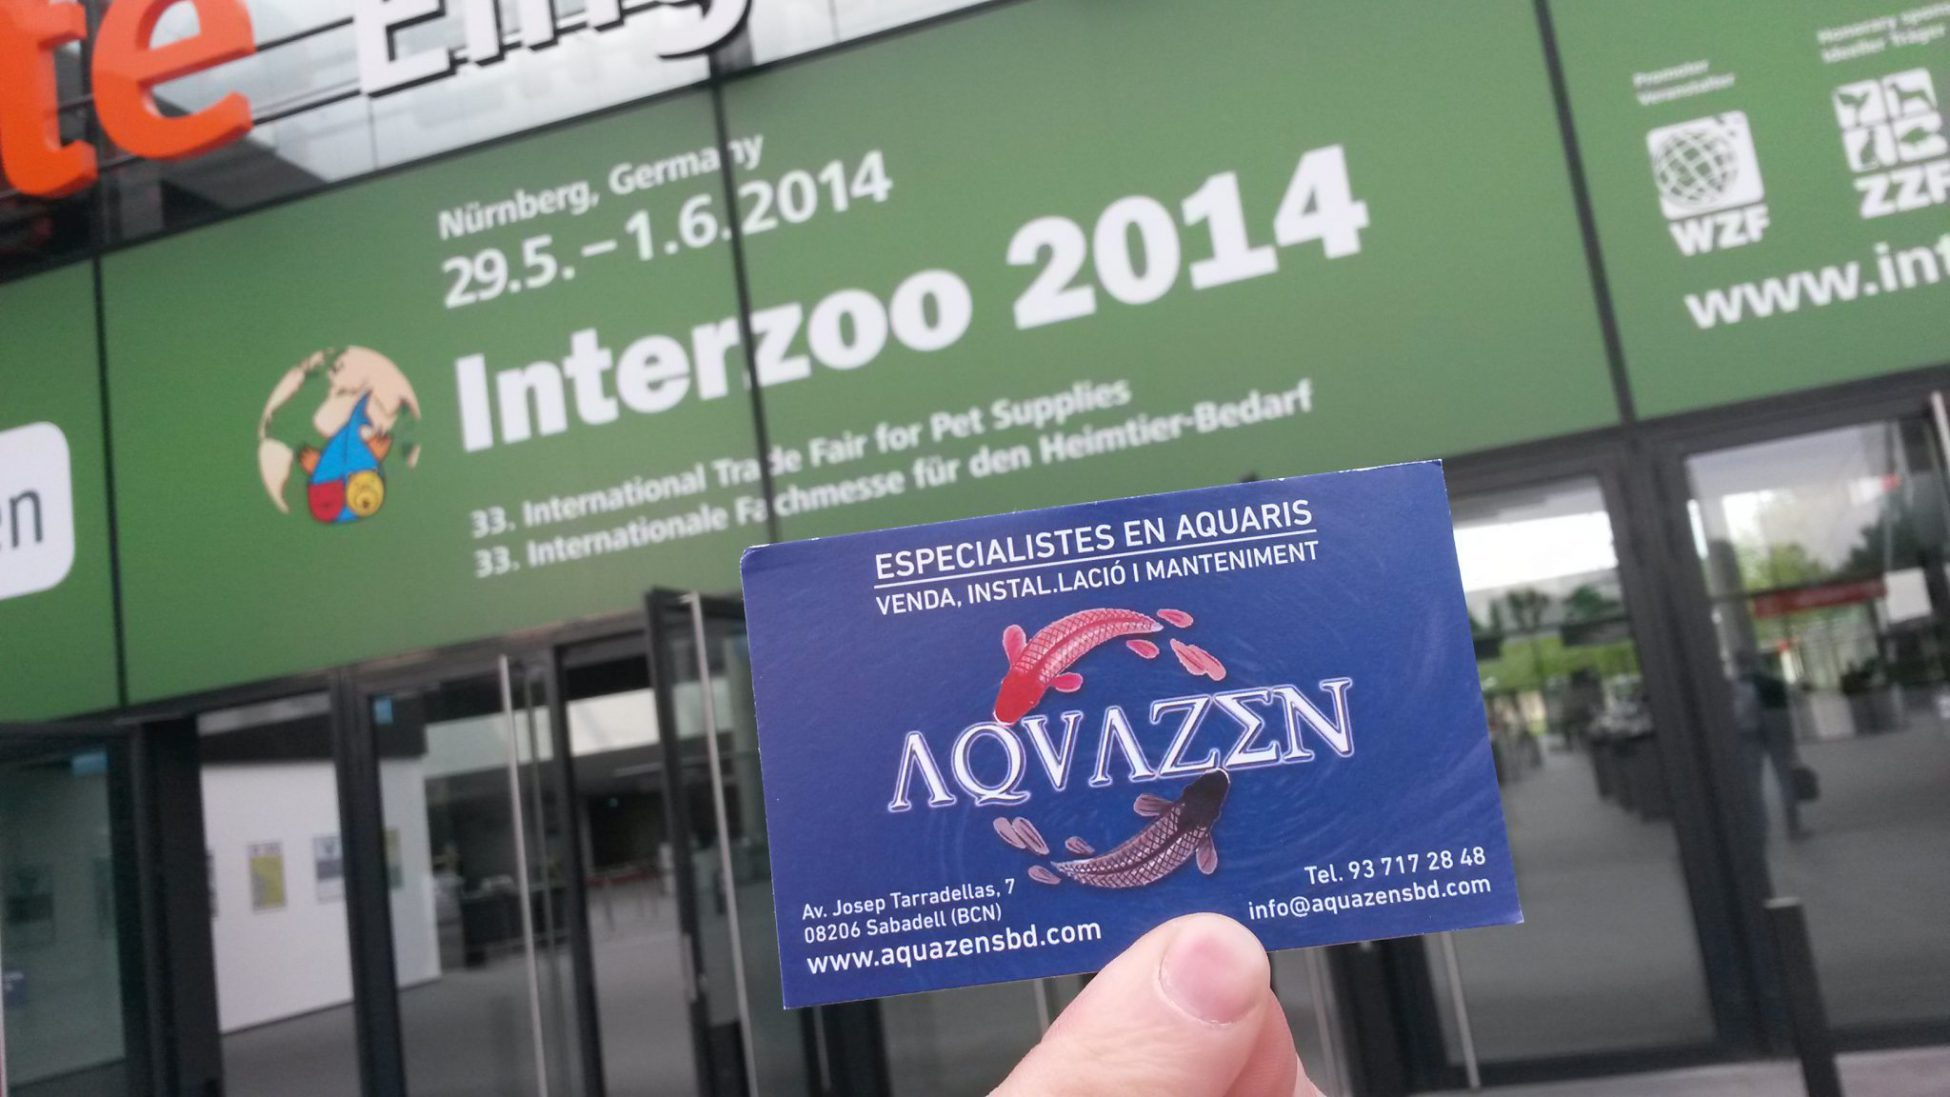 Interzoo 2014 por AQUAZEN